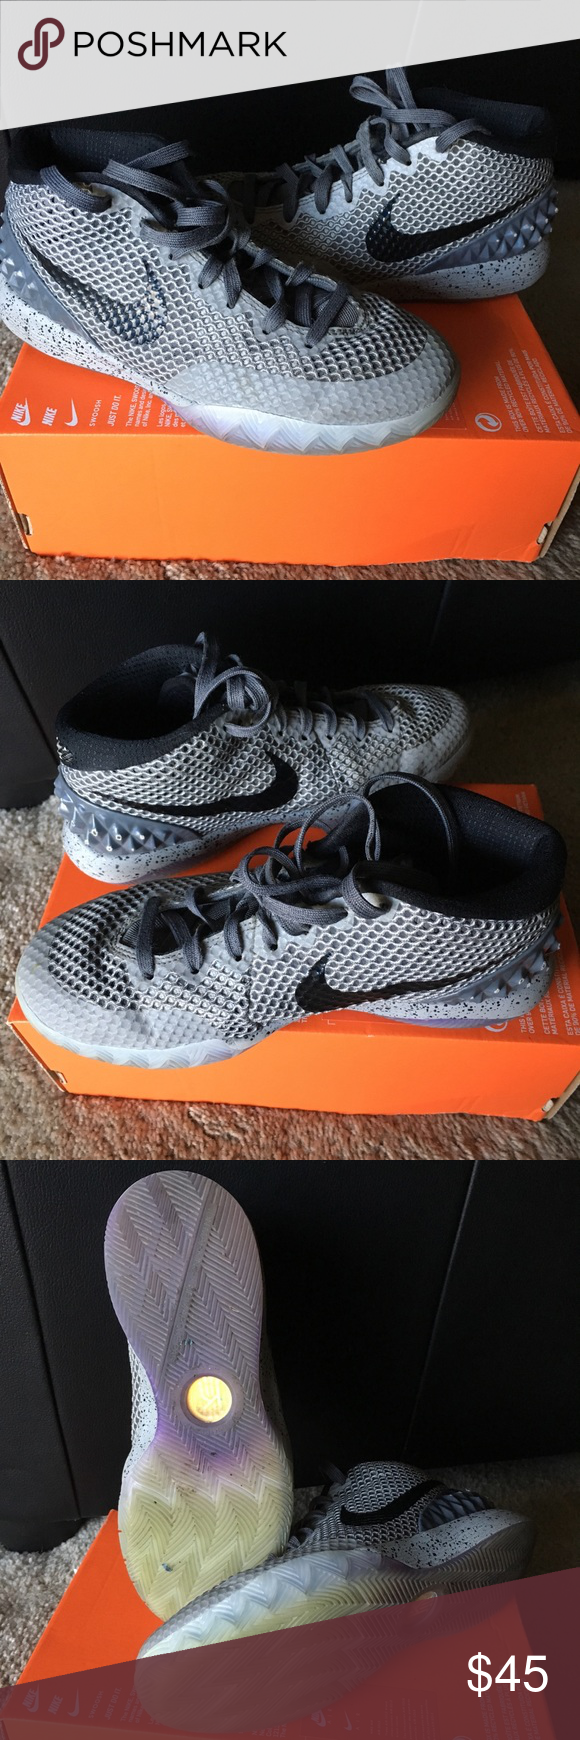 """best service 1d168 5d965 Nike Kyrie 1 """"All-Star"""" 5 youth Used Nike Kyrie 1 all-star ..."""